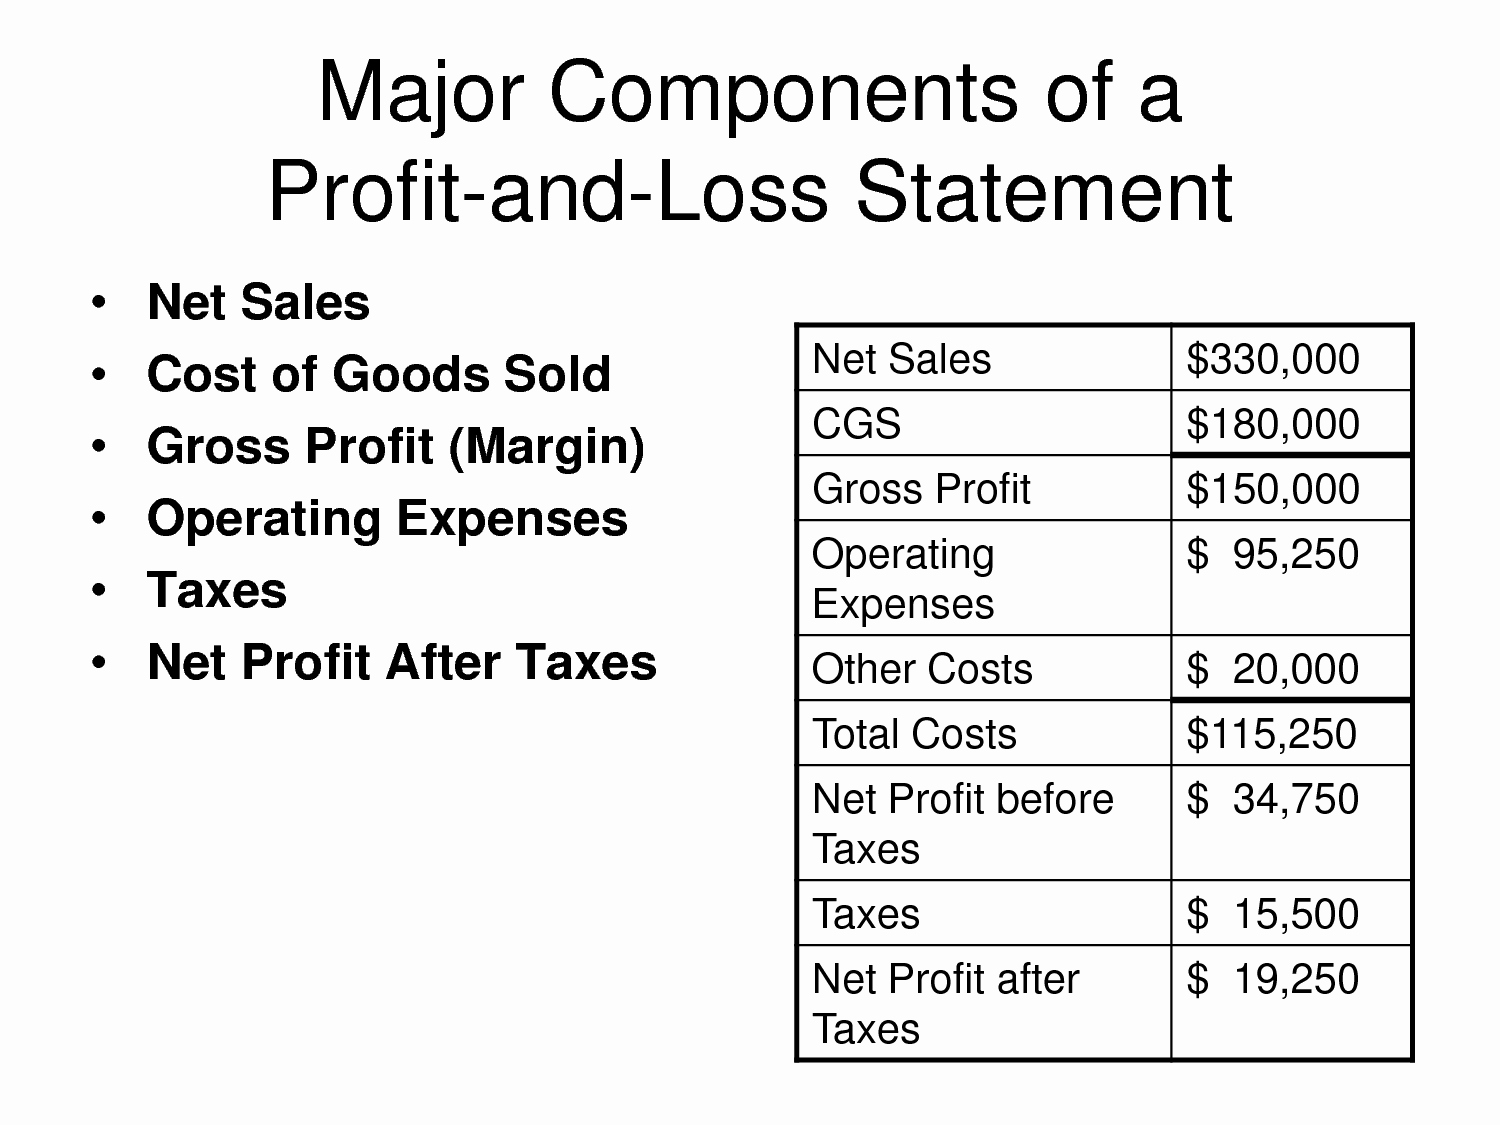 Online Profit and Loss Statement Awesome Basic Profit and Loss Statement Template Mughals